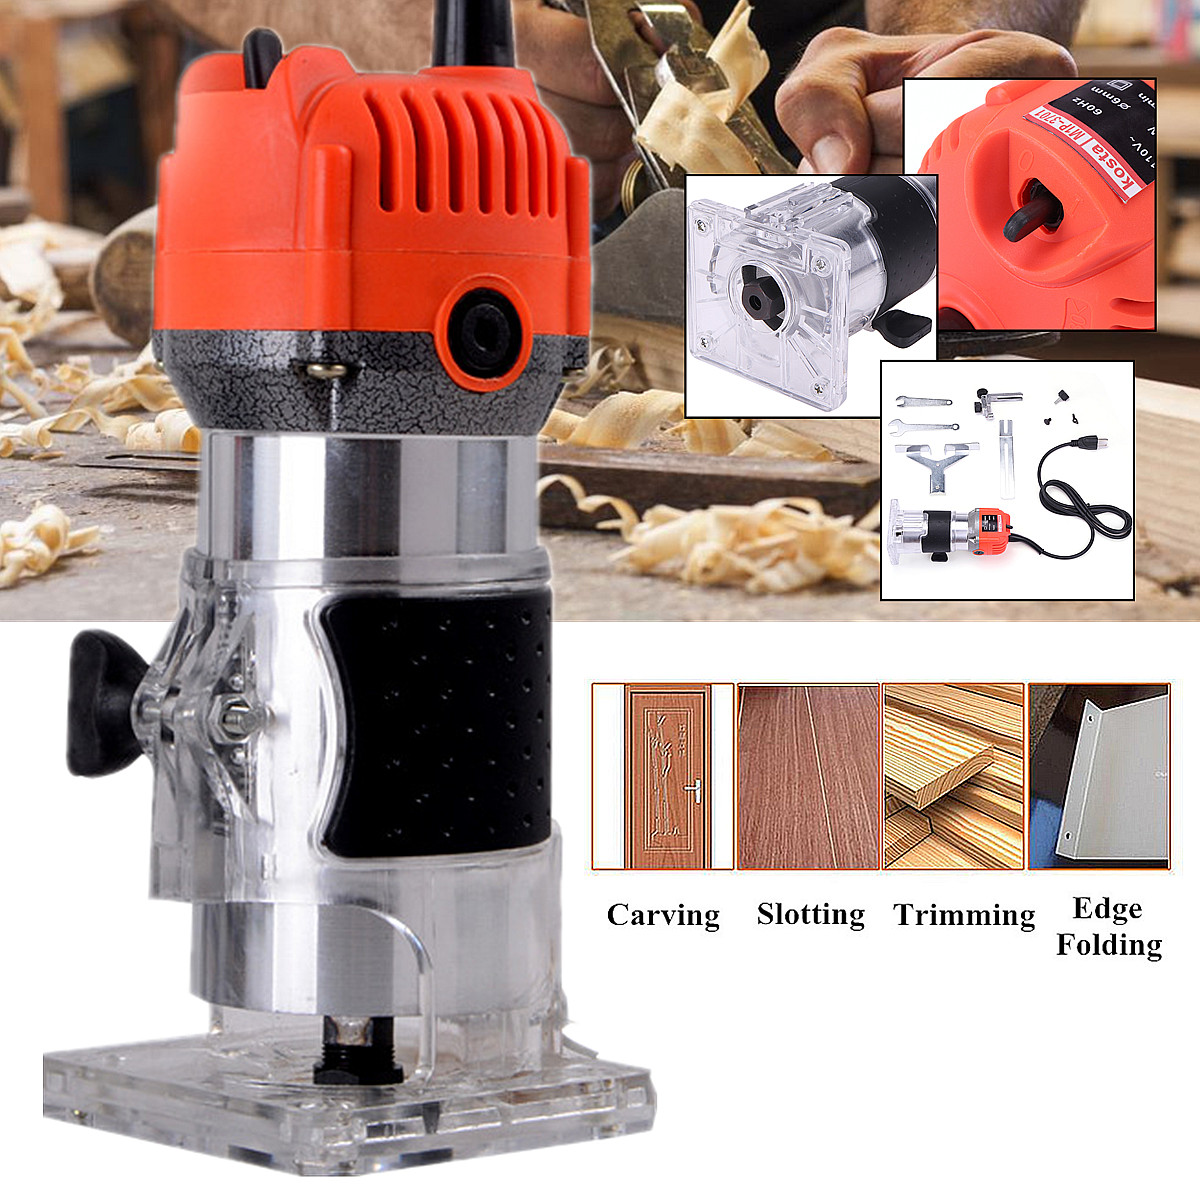 """Punctual 110v 750w 1/4"""" 60hz 30000r/min Corded Electric Hand Trimmer Wood Laminator Router Joiners Tools External Carbon Brush Lift Knob"""